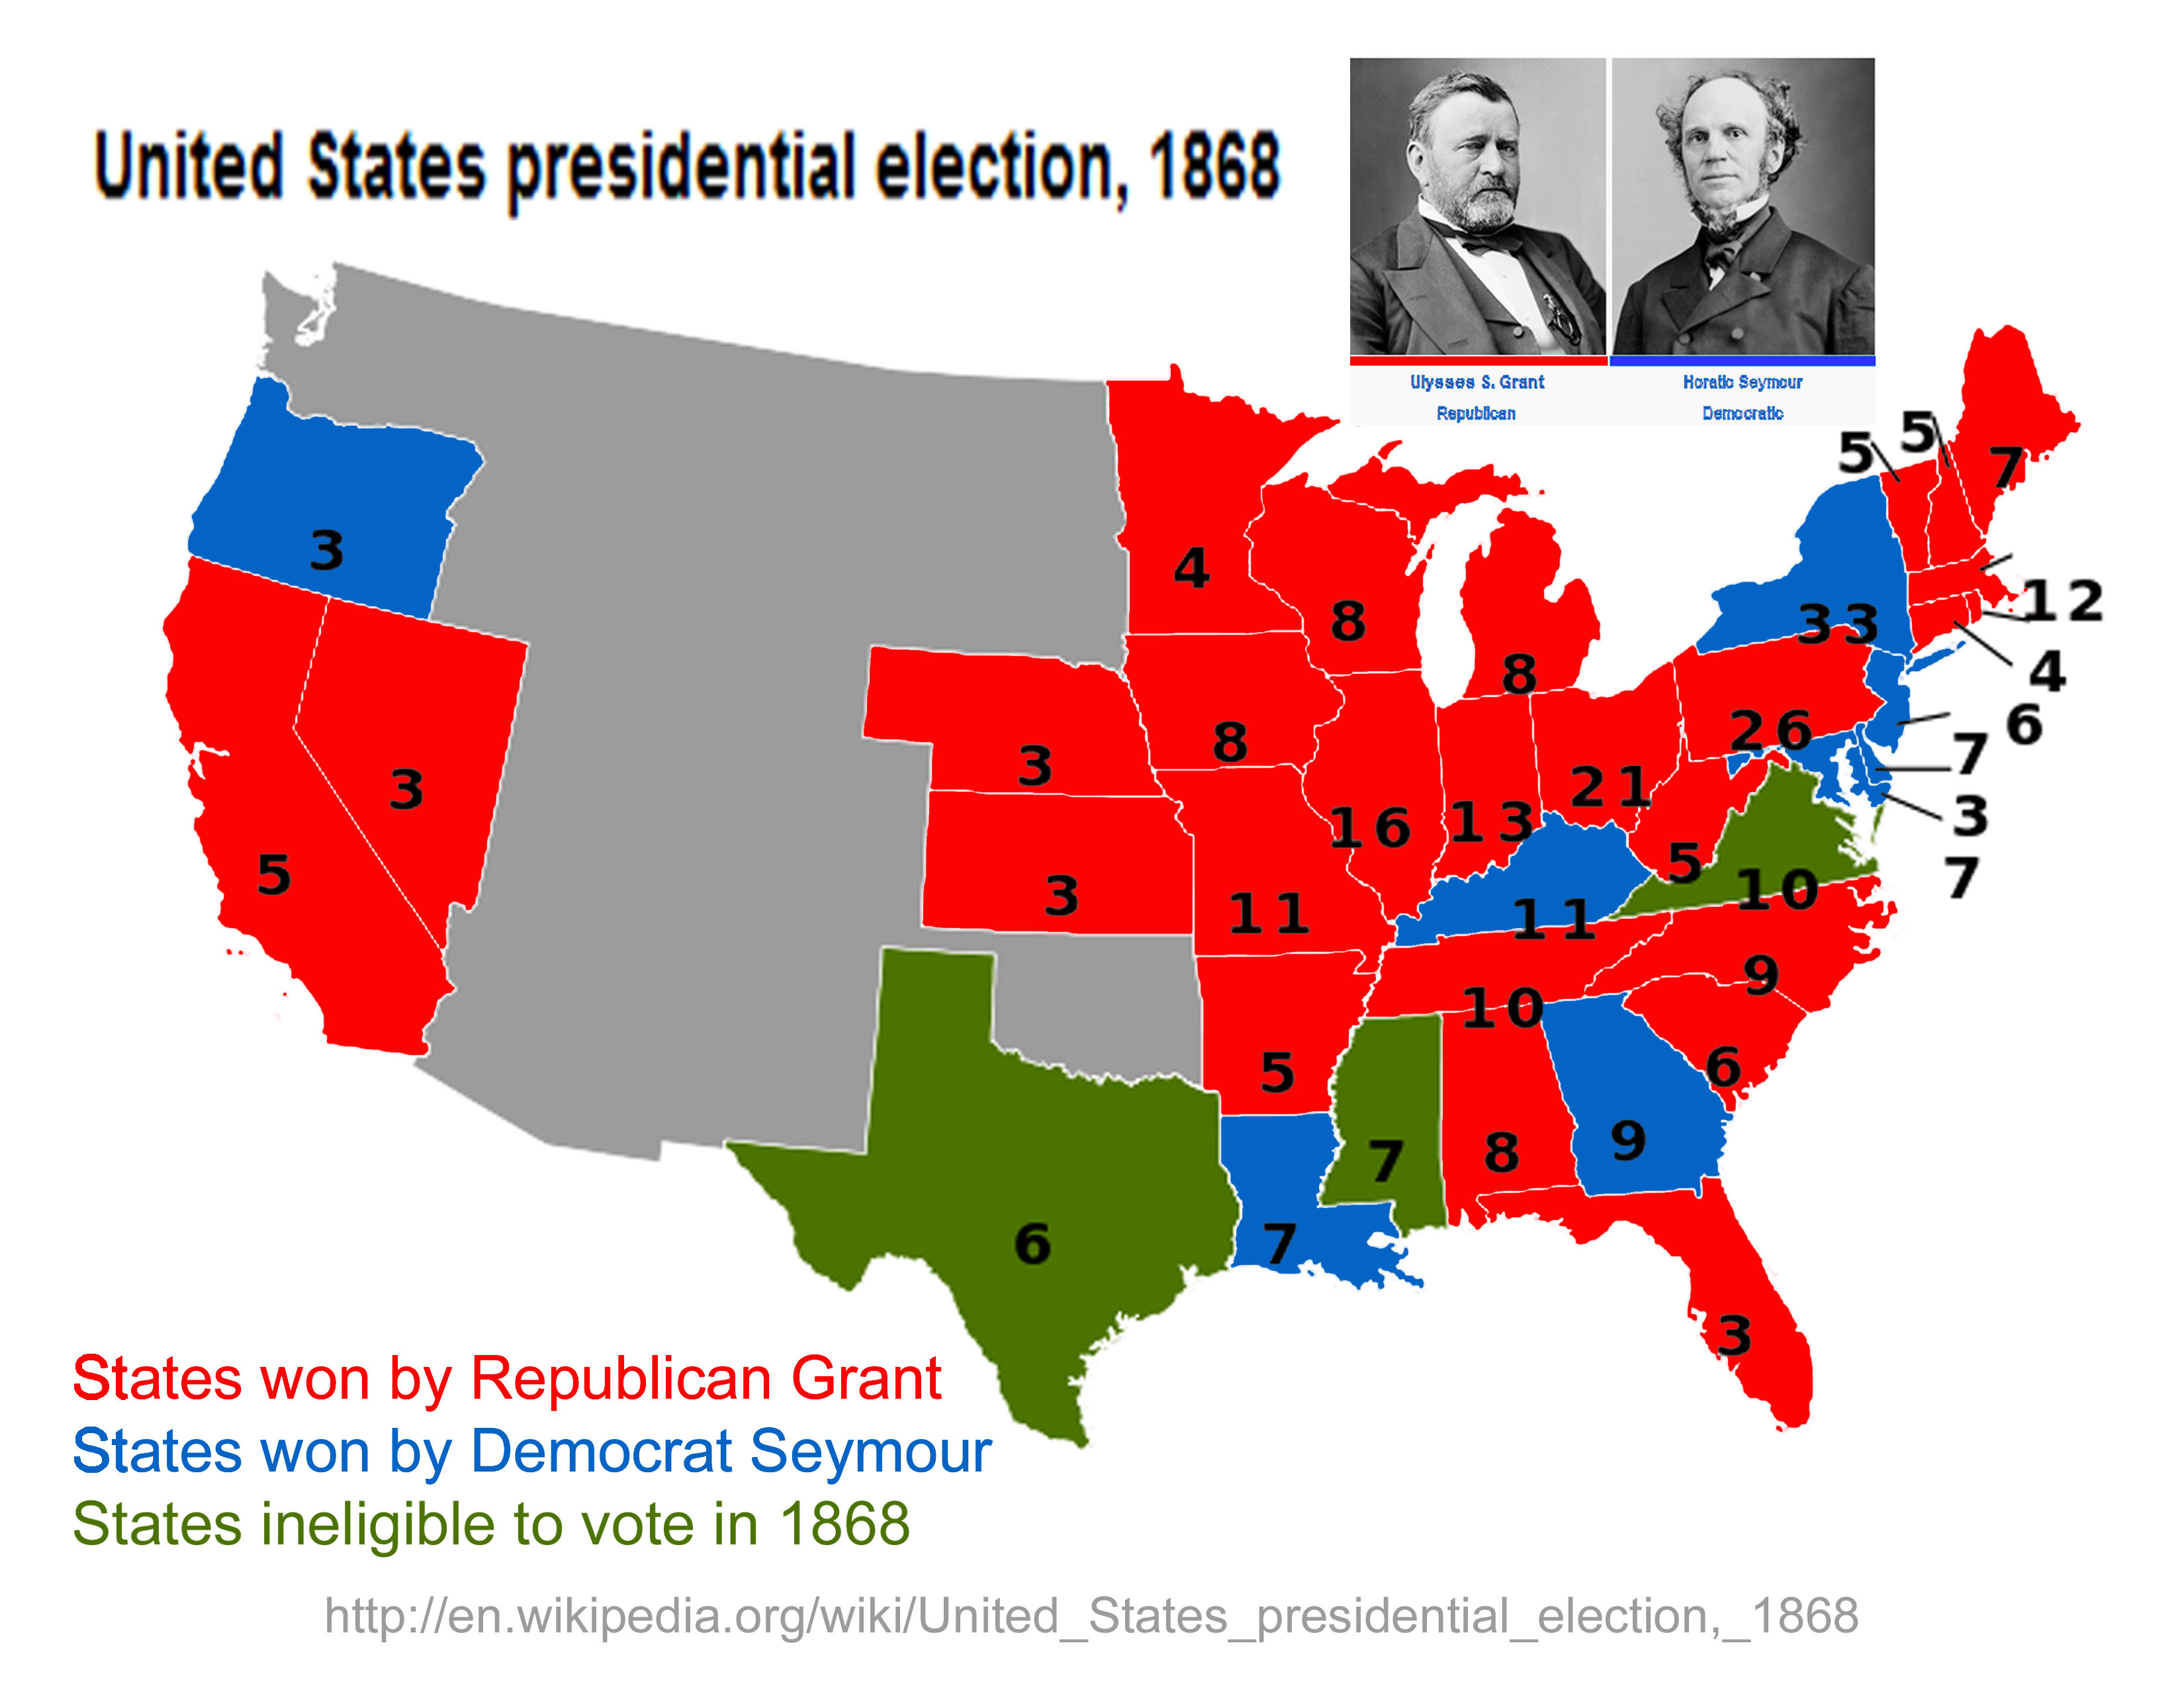 ... of the presidential election of 1868